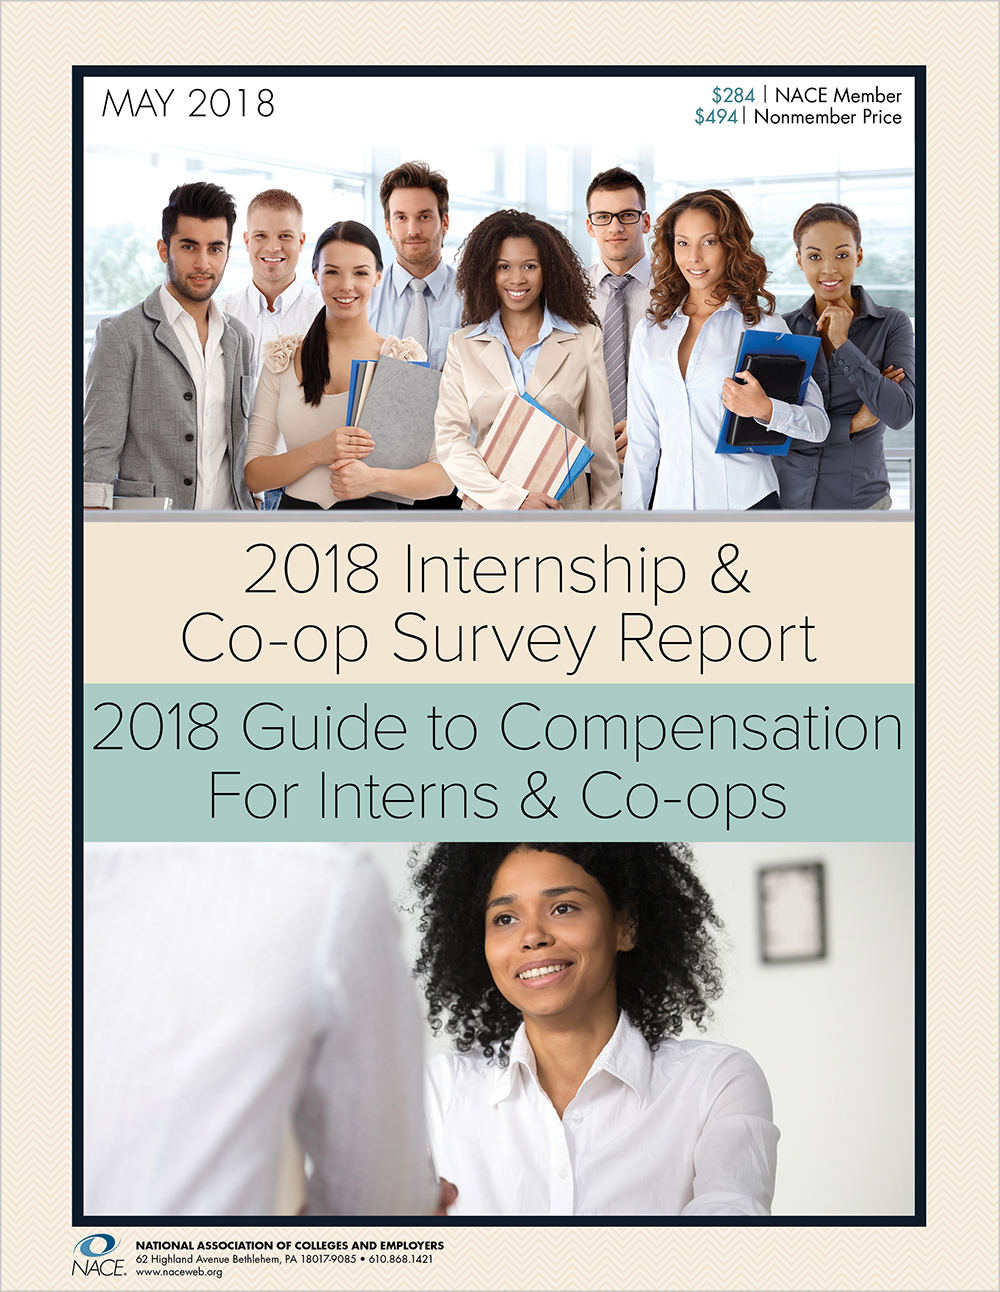 2018 NACE Guide to Compensation for Interns & Co-ops2018 NACE Internship Survey & Compensation Guide Combo